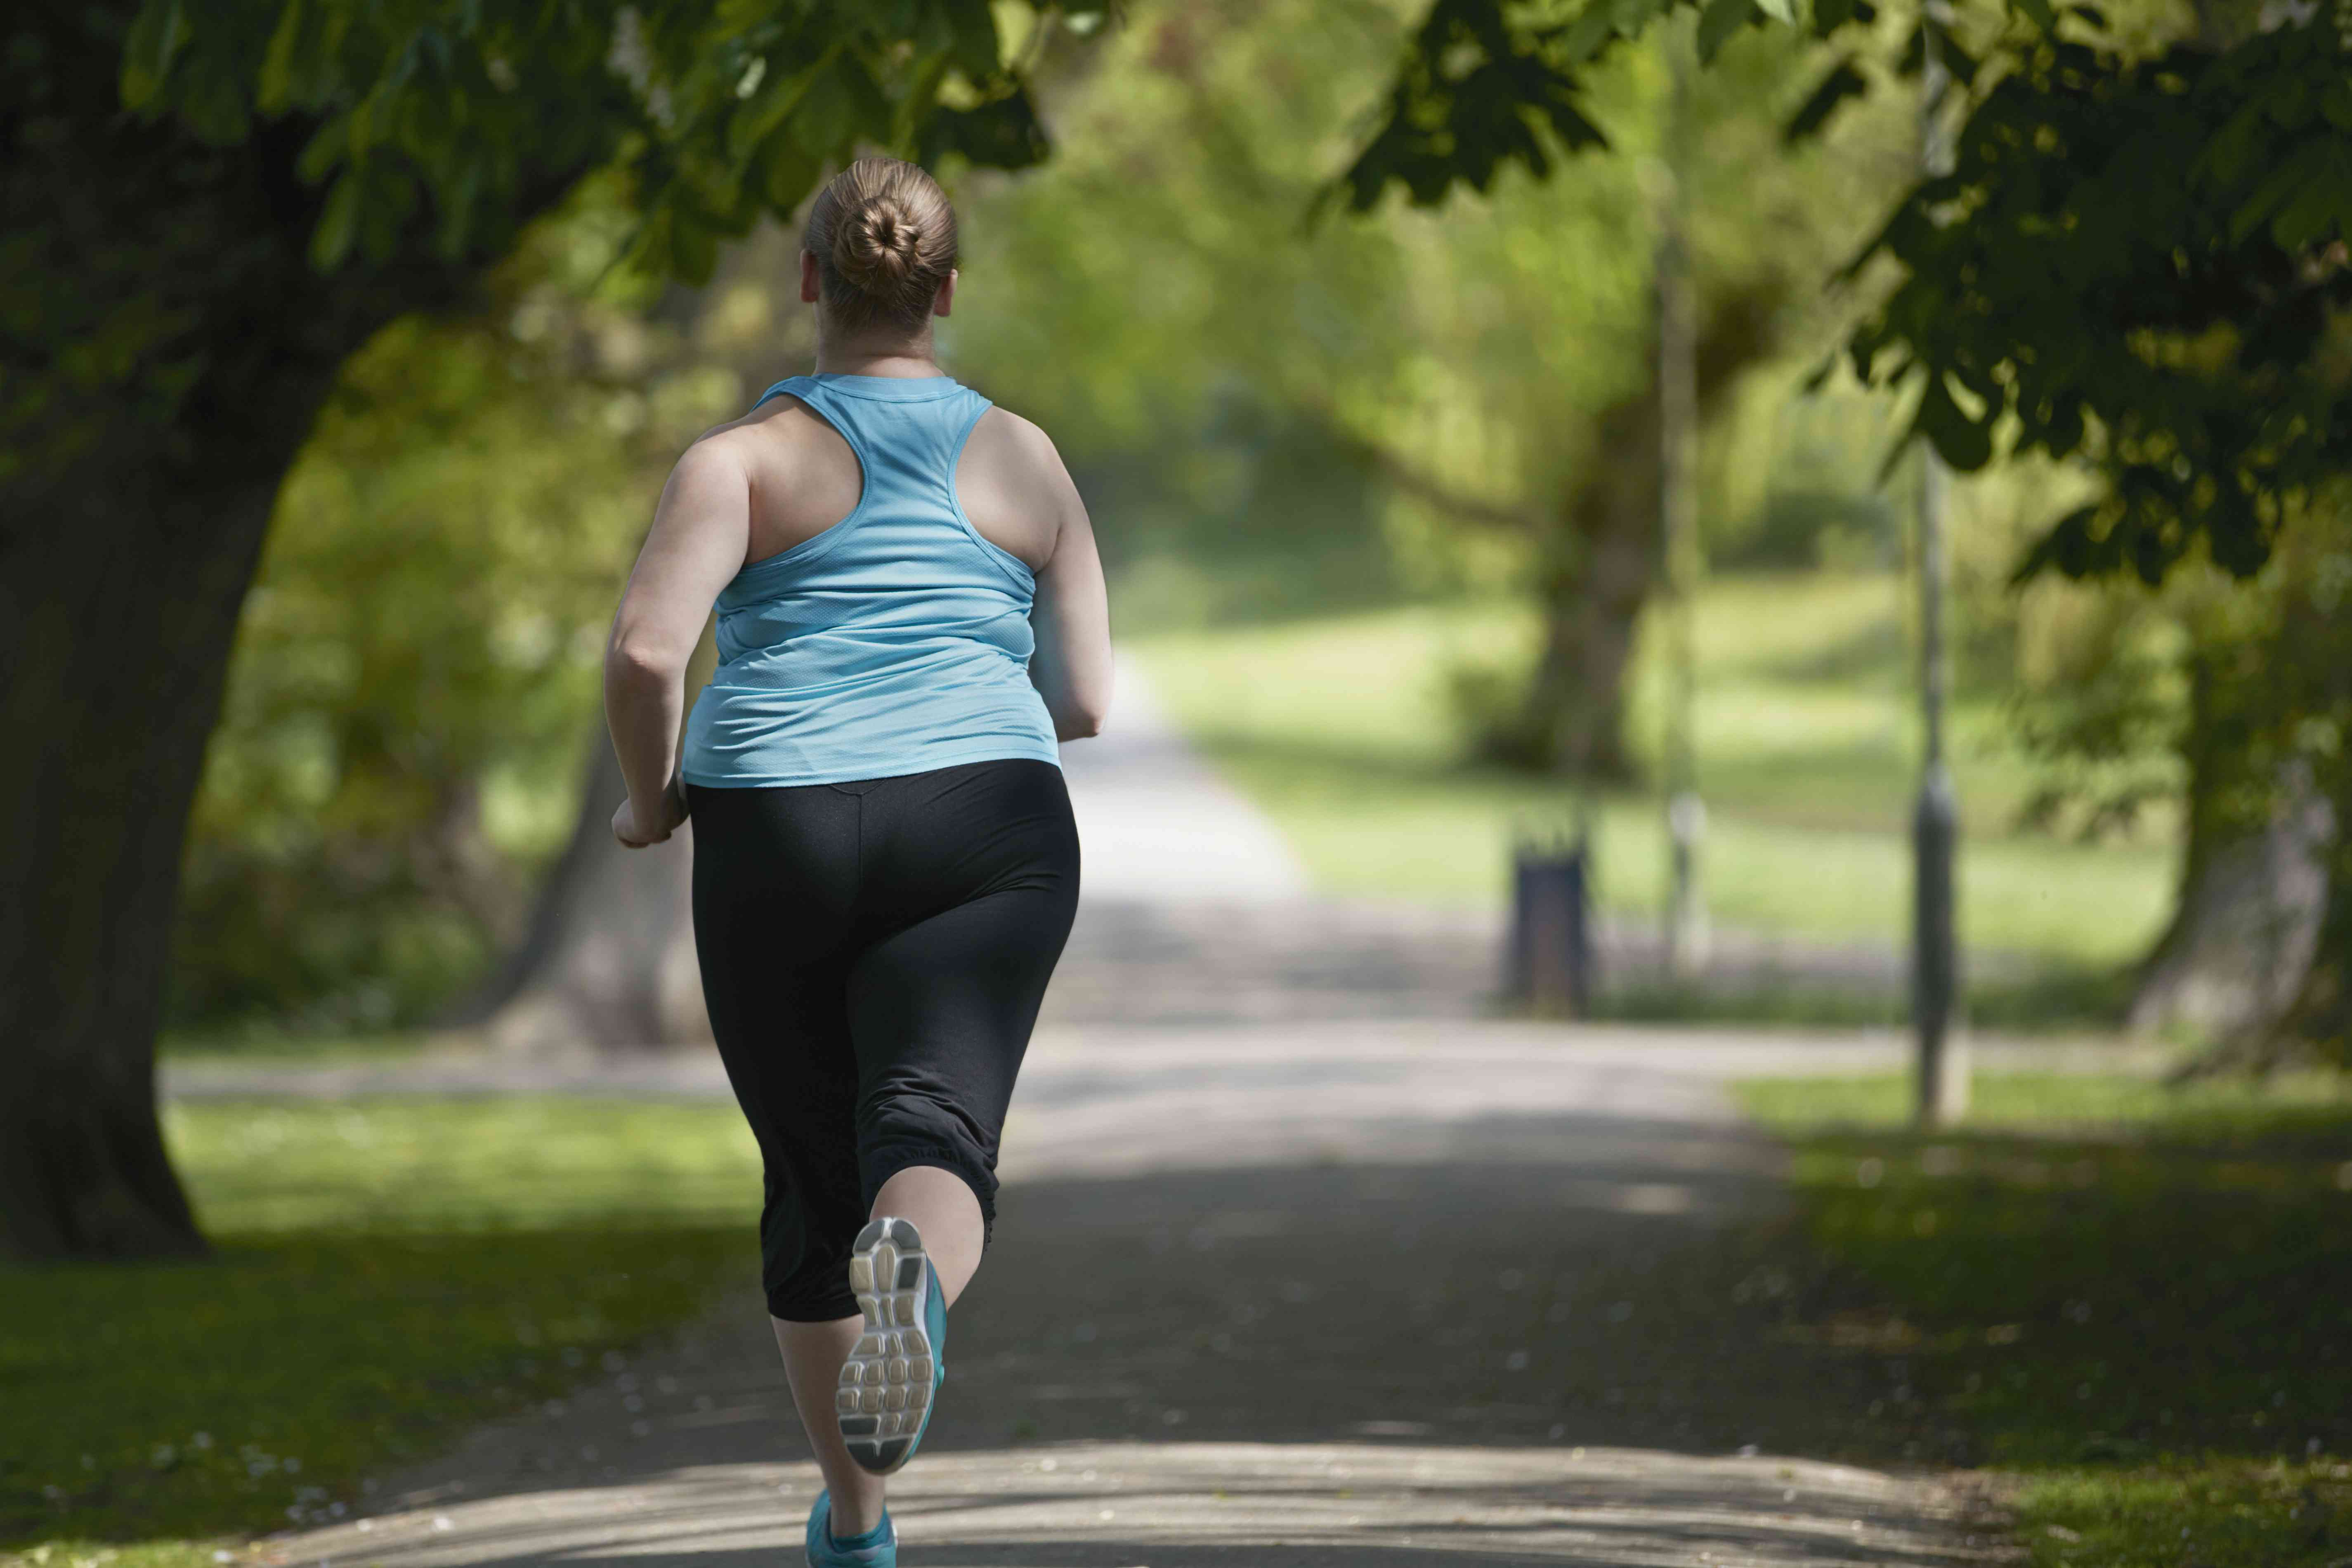 A woman running on a path in the park